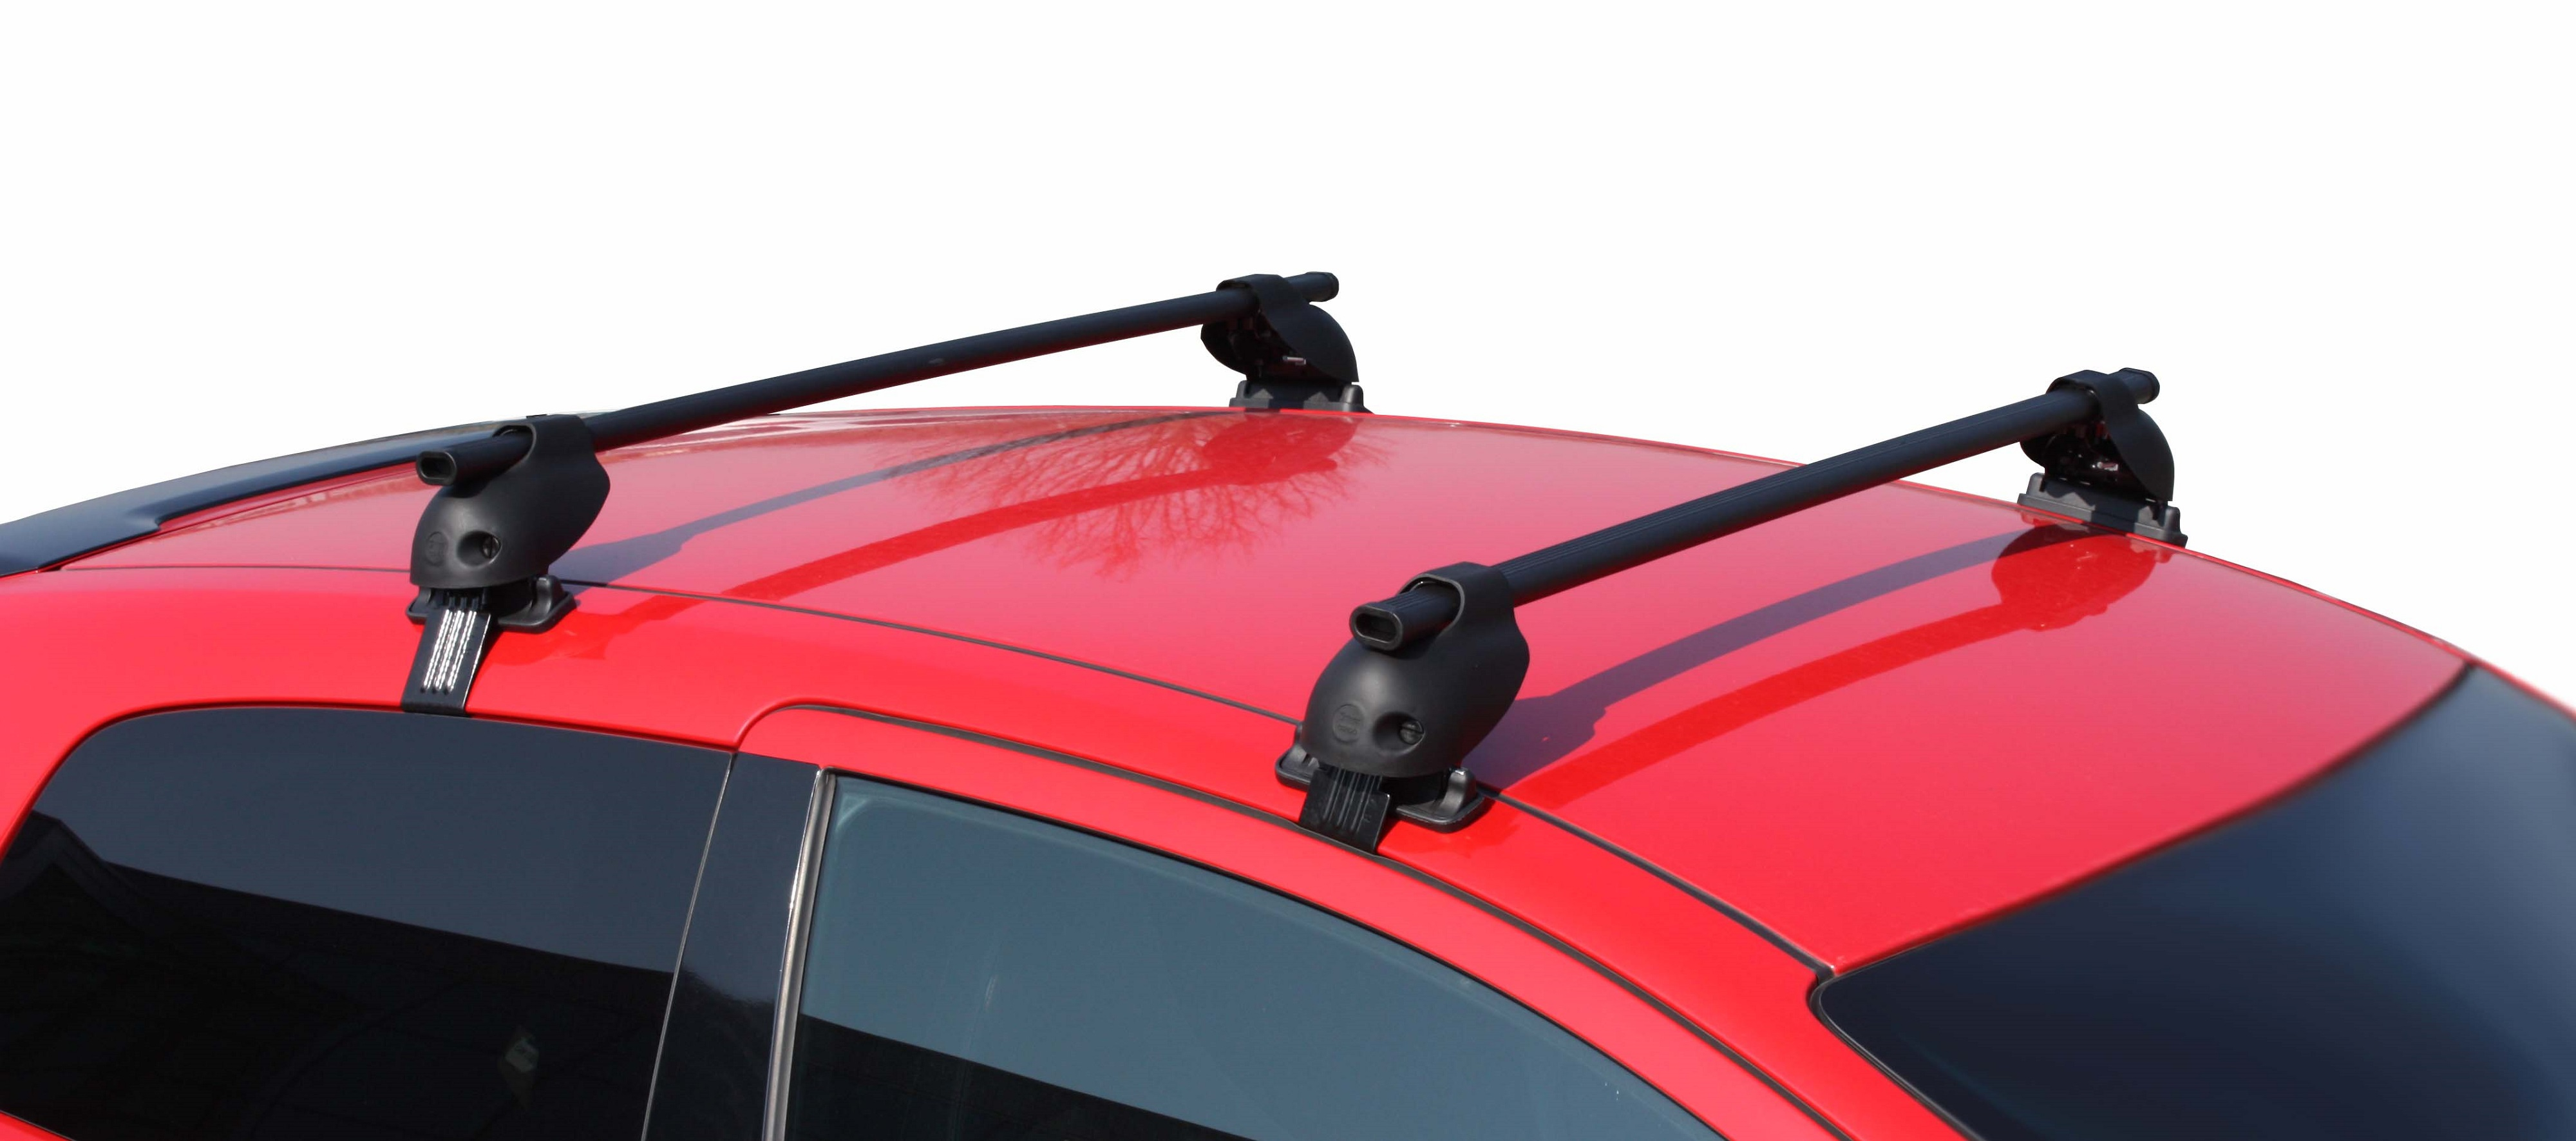 Equip Cla108 Roof Bar Racks Touring Travel Replacement